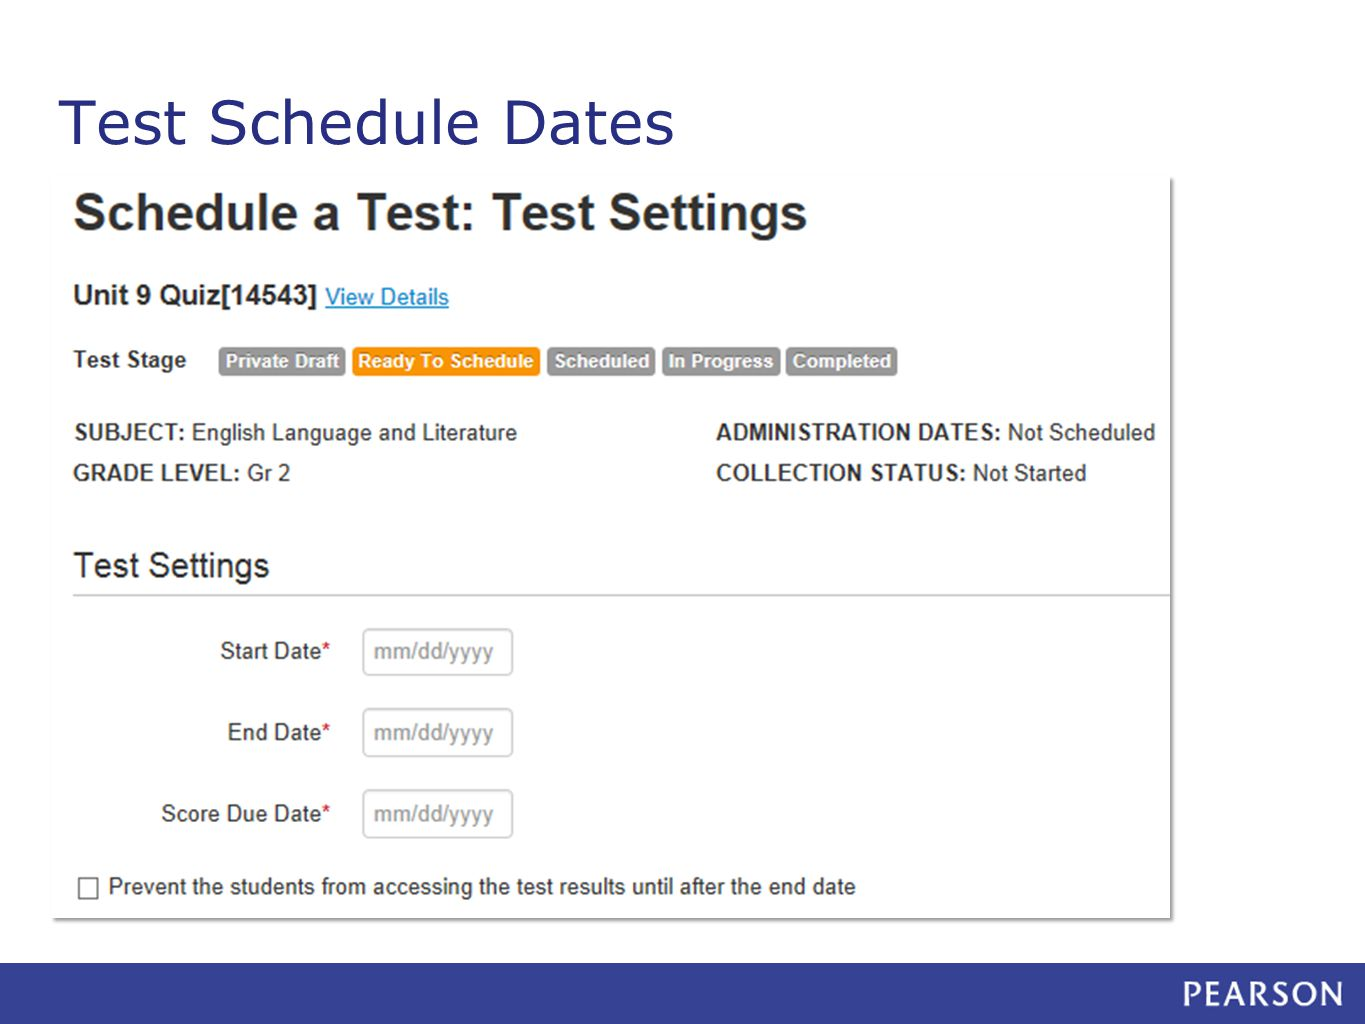 Test Schedule Dates